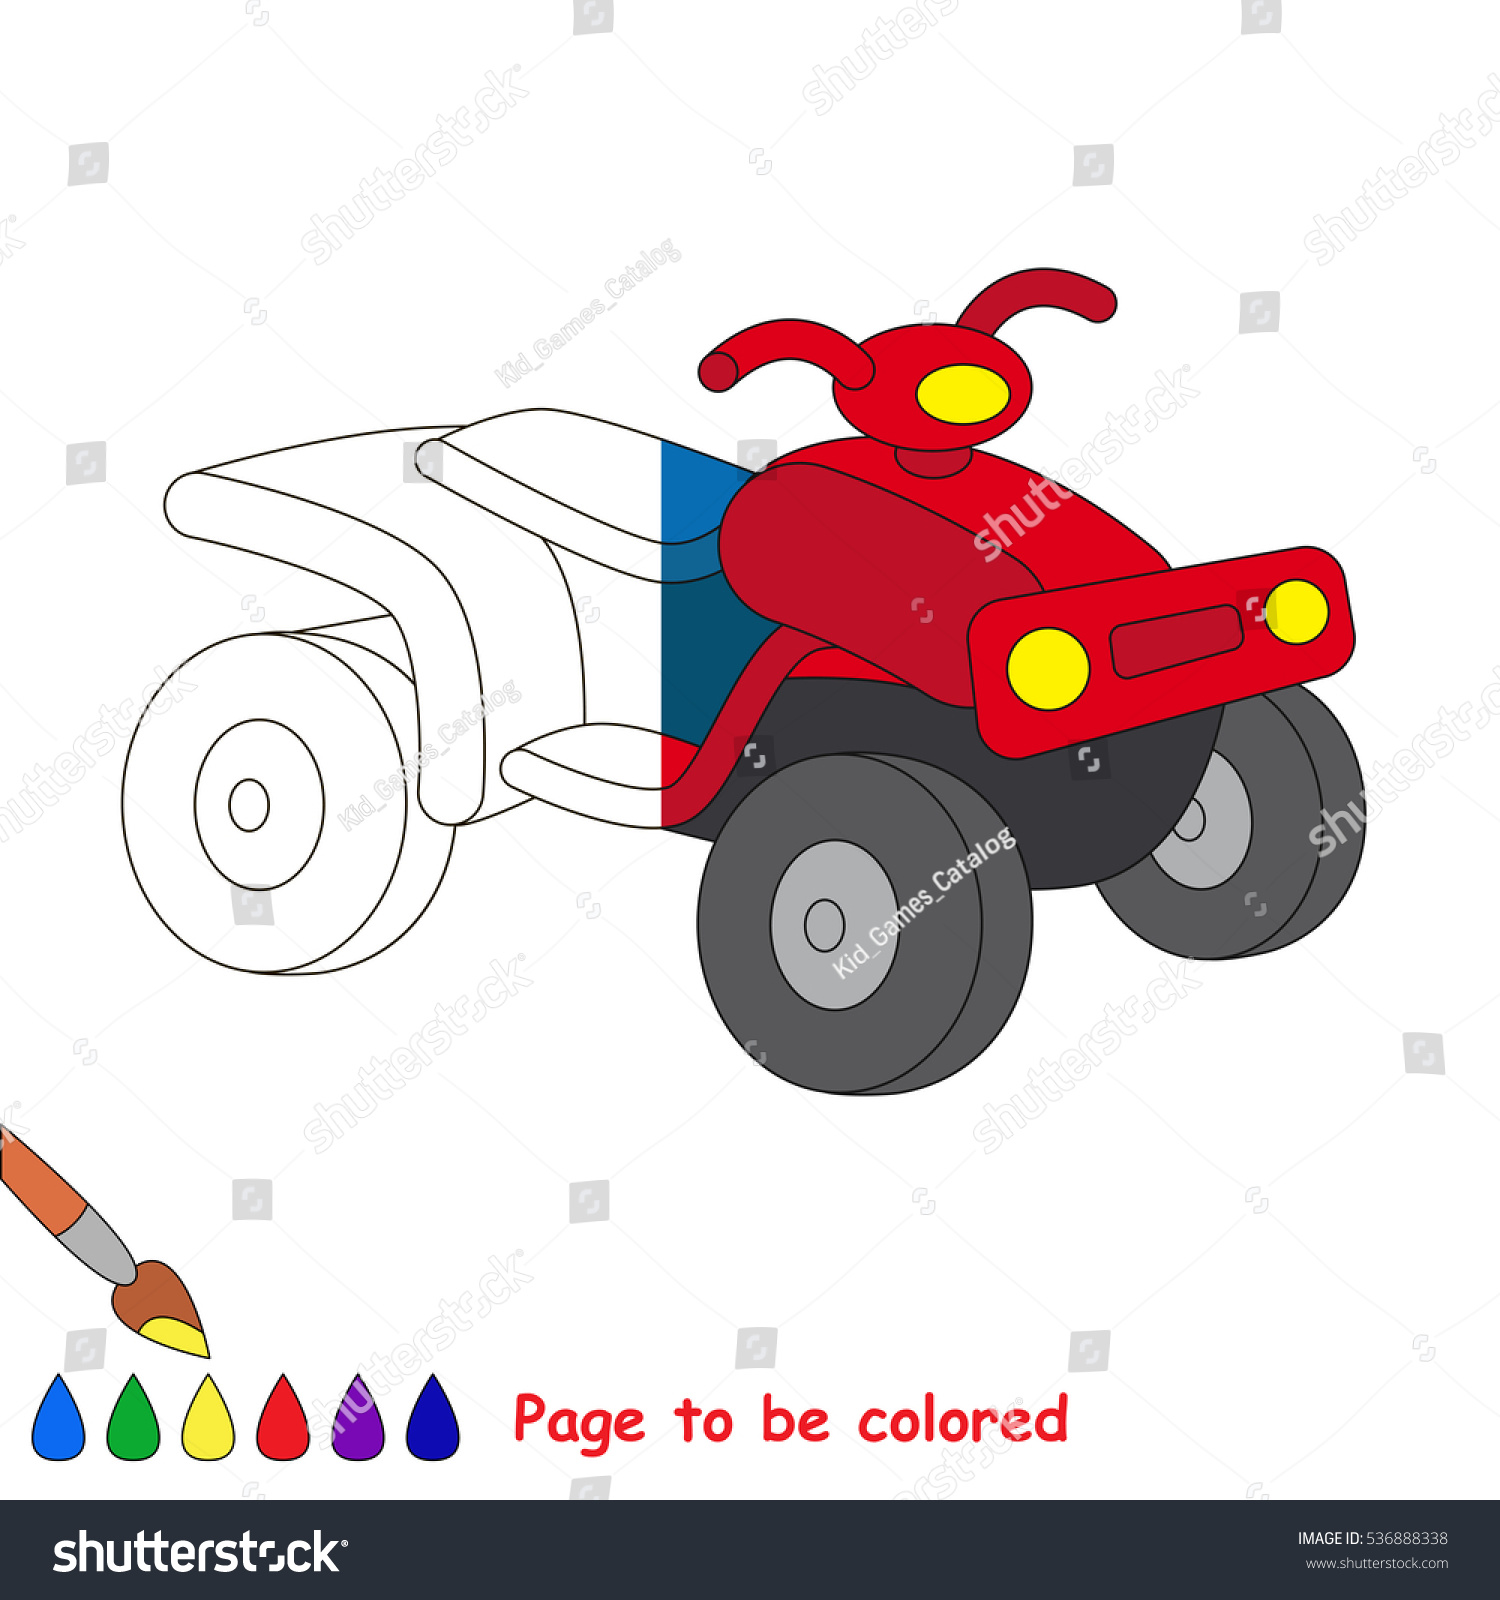 Quad Bike Be Colored Coloring Book Stock Vector 536888338 - Shutterstock